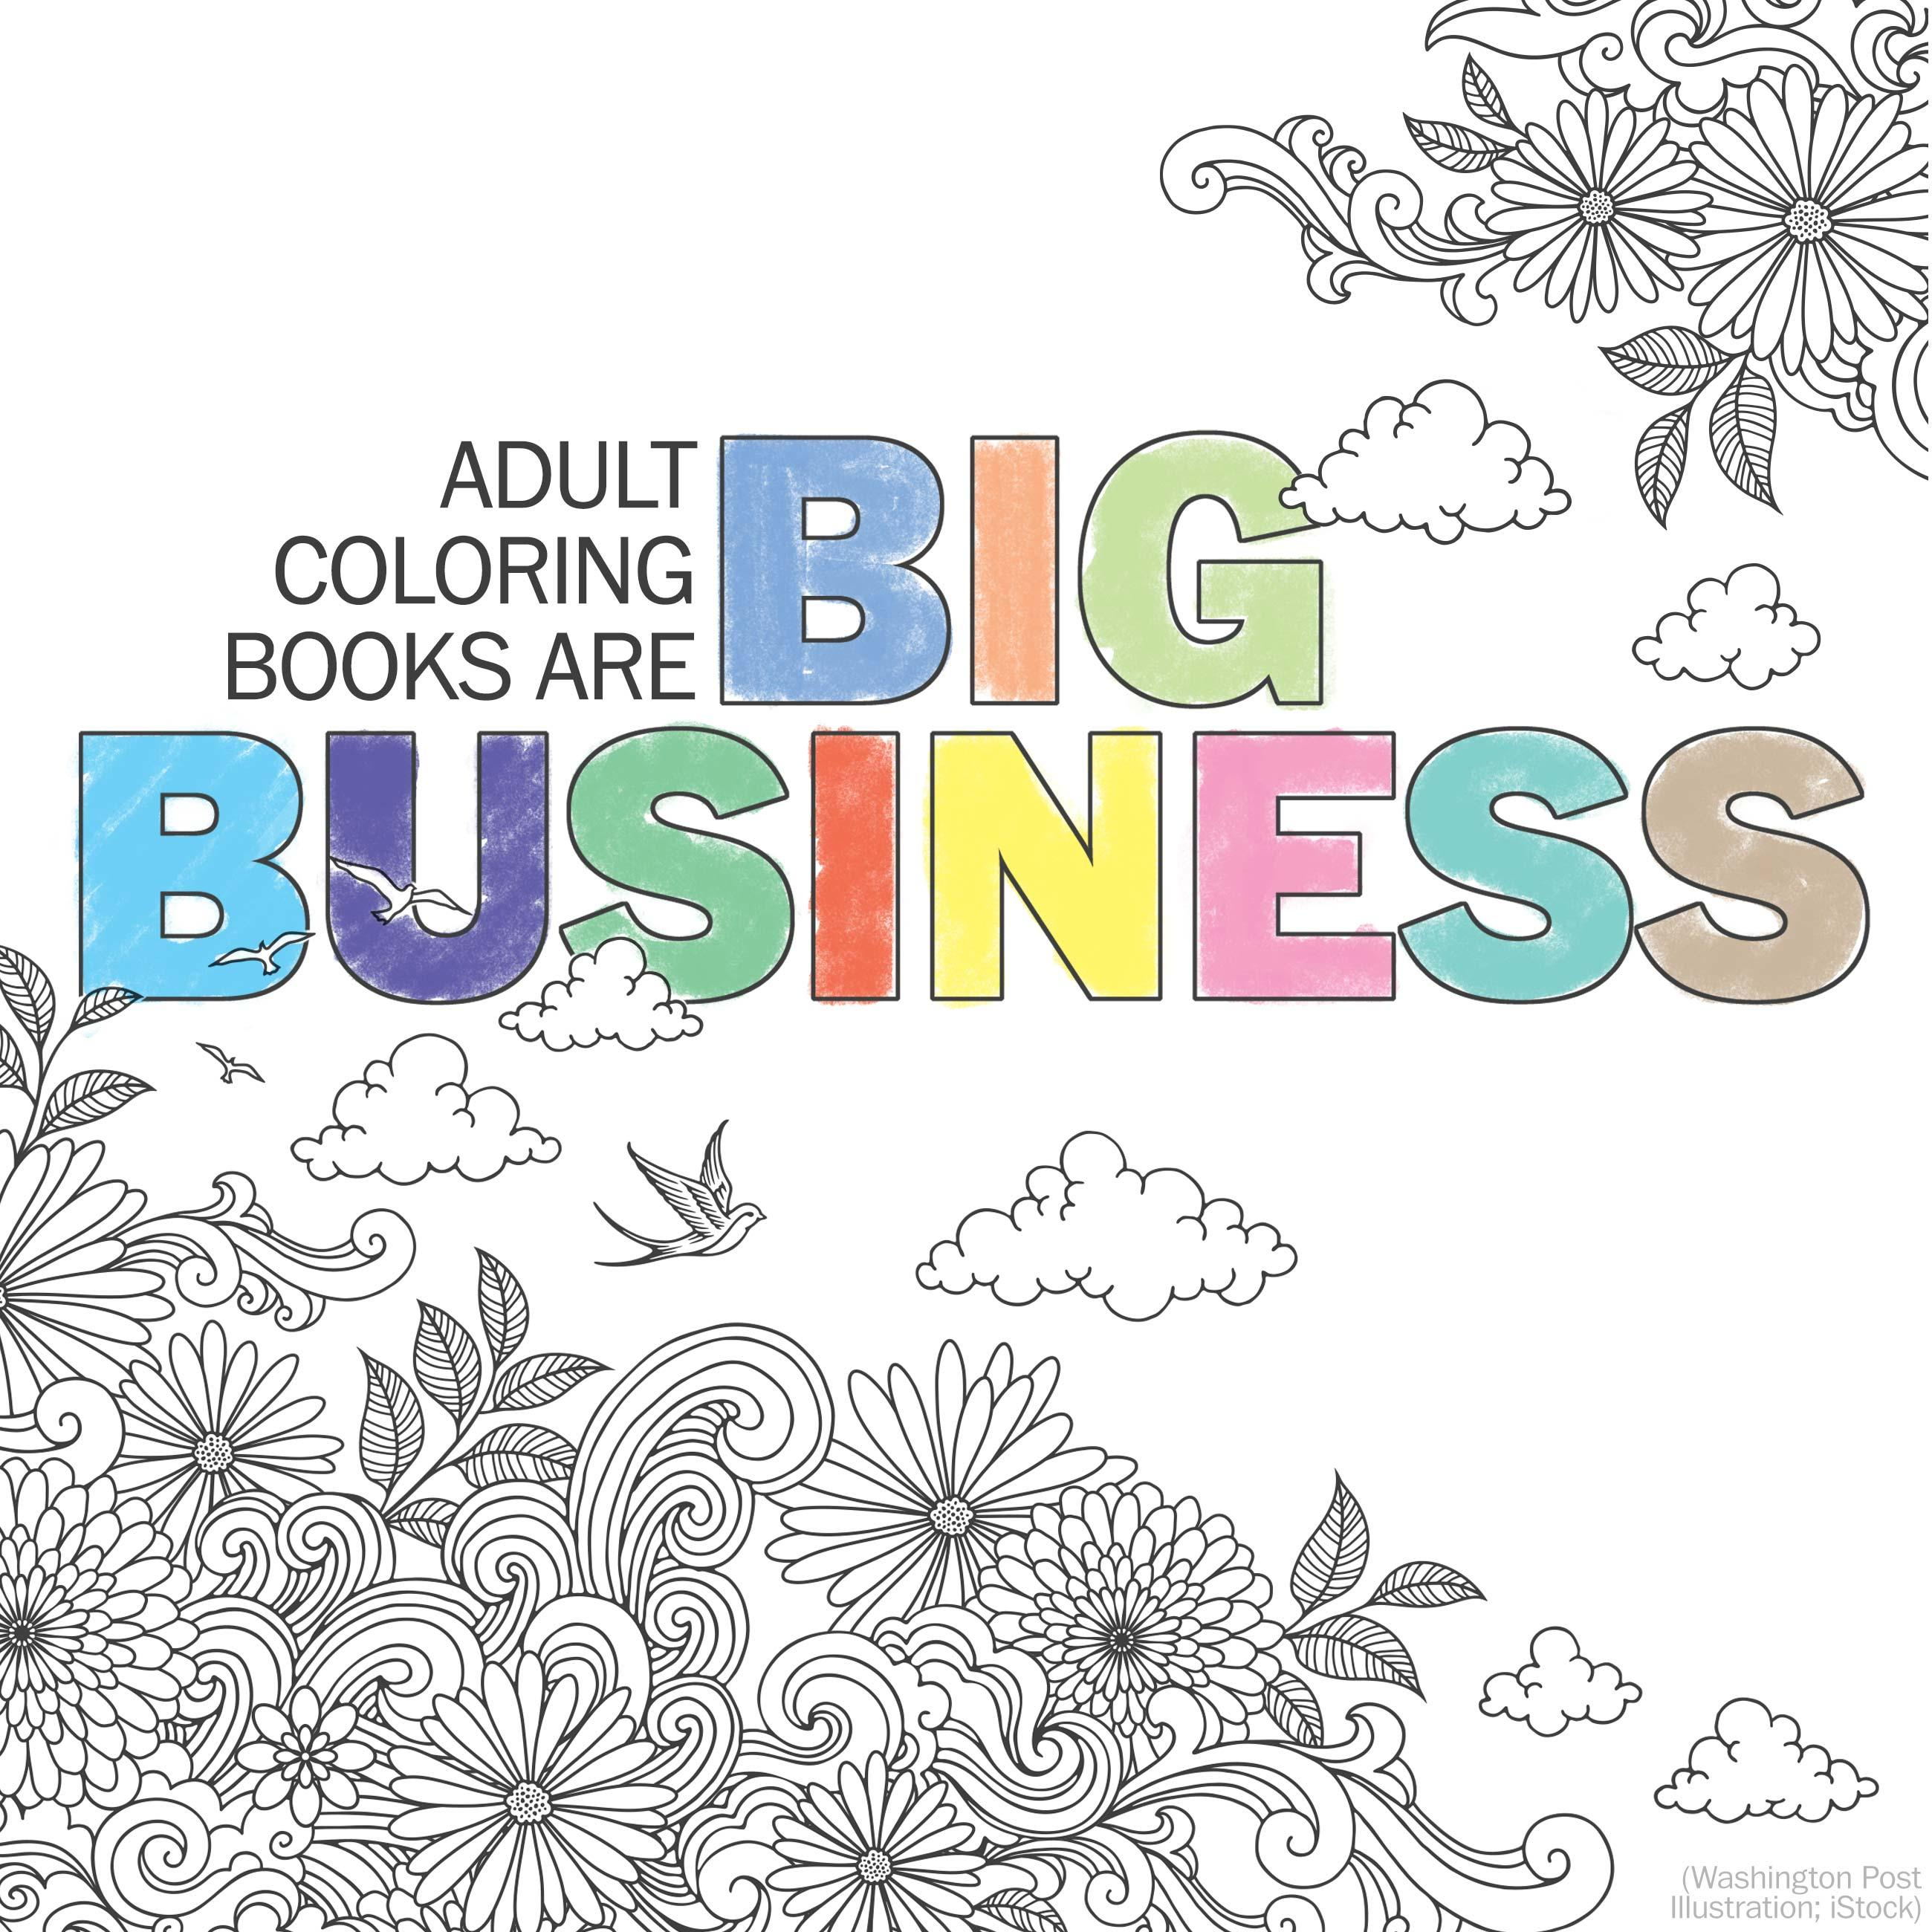 The big business behind the adult coloring book craze